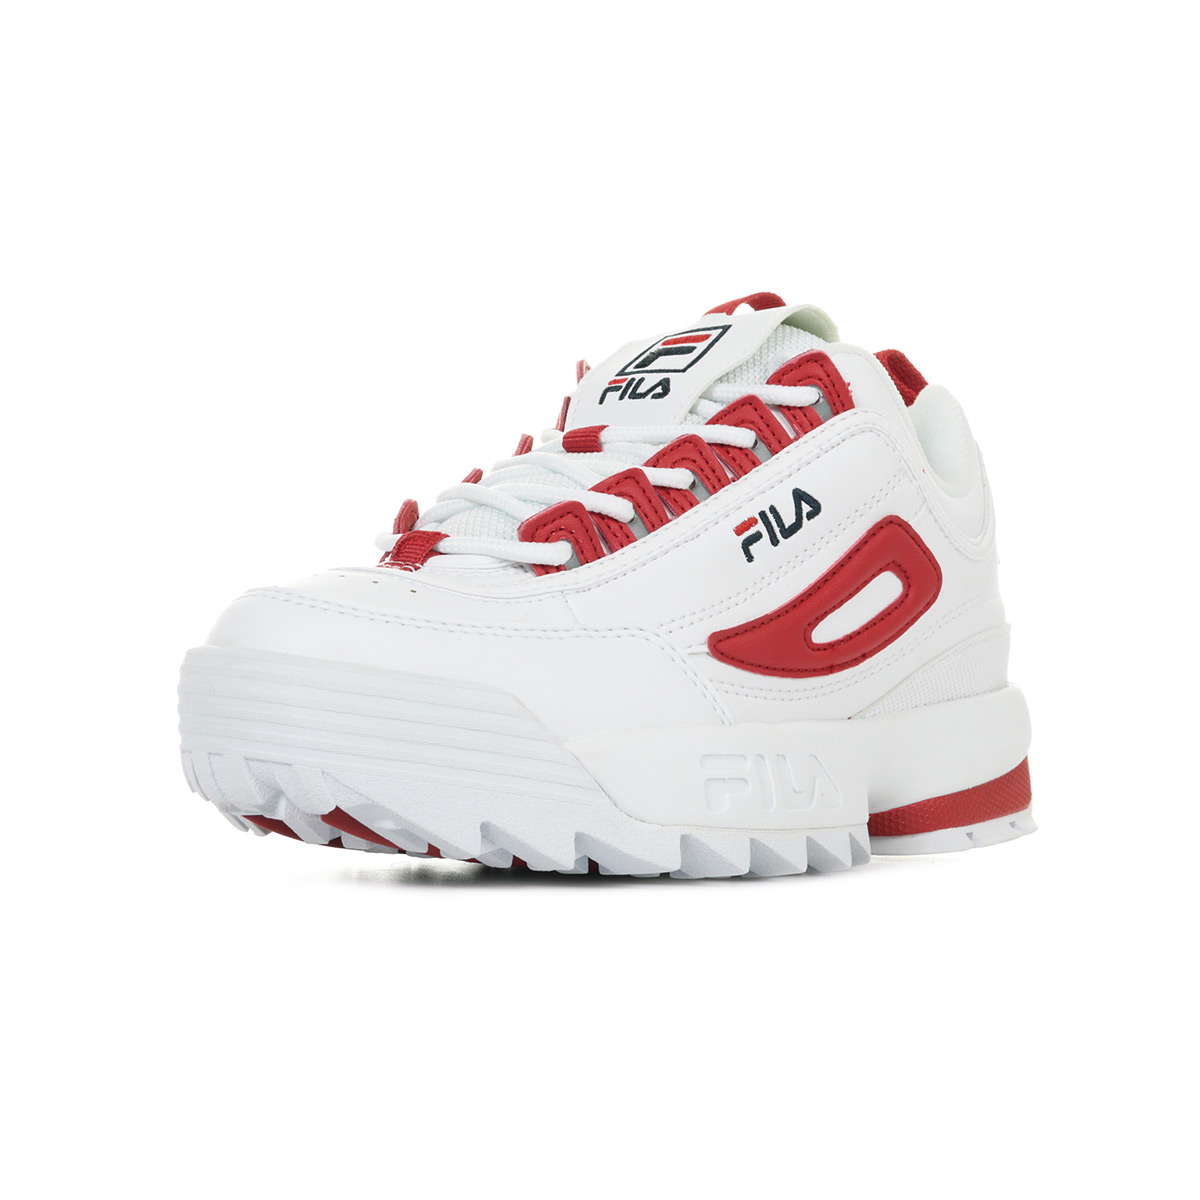 Cb Low Baskets Mode Femme Wn's Sd4twvqwv Fila 101060402a Disruptor VqzGpMSU